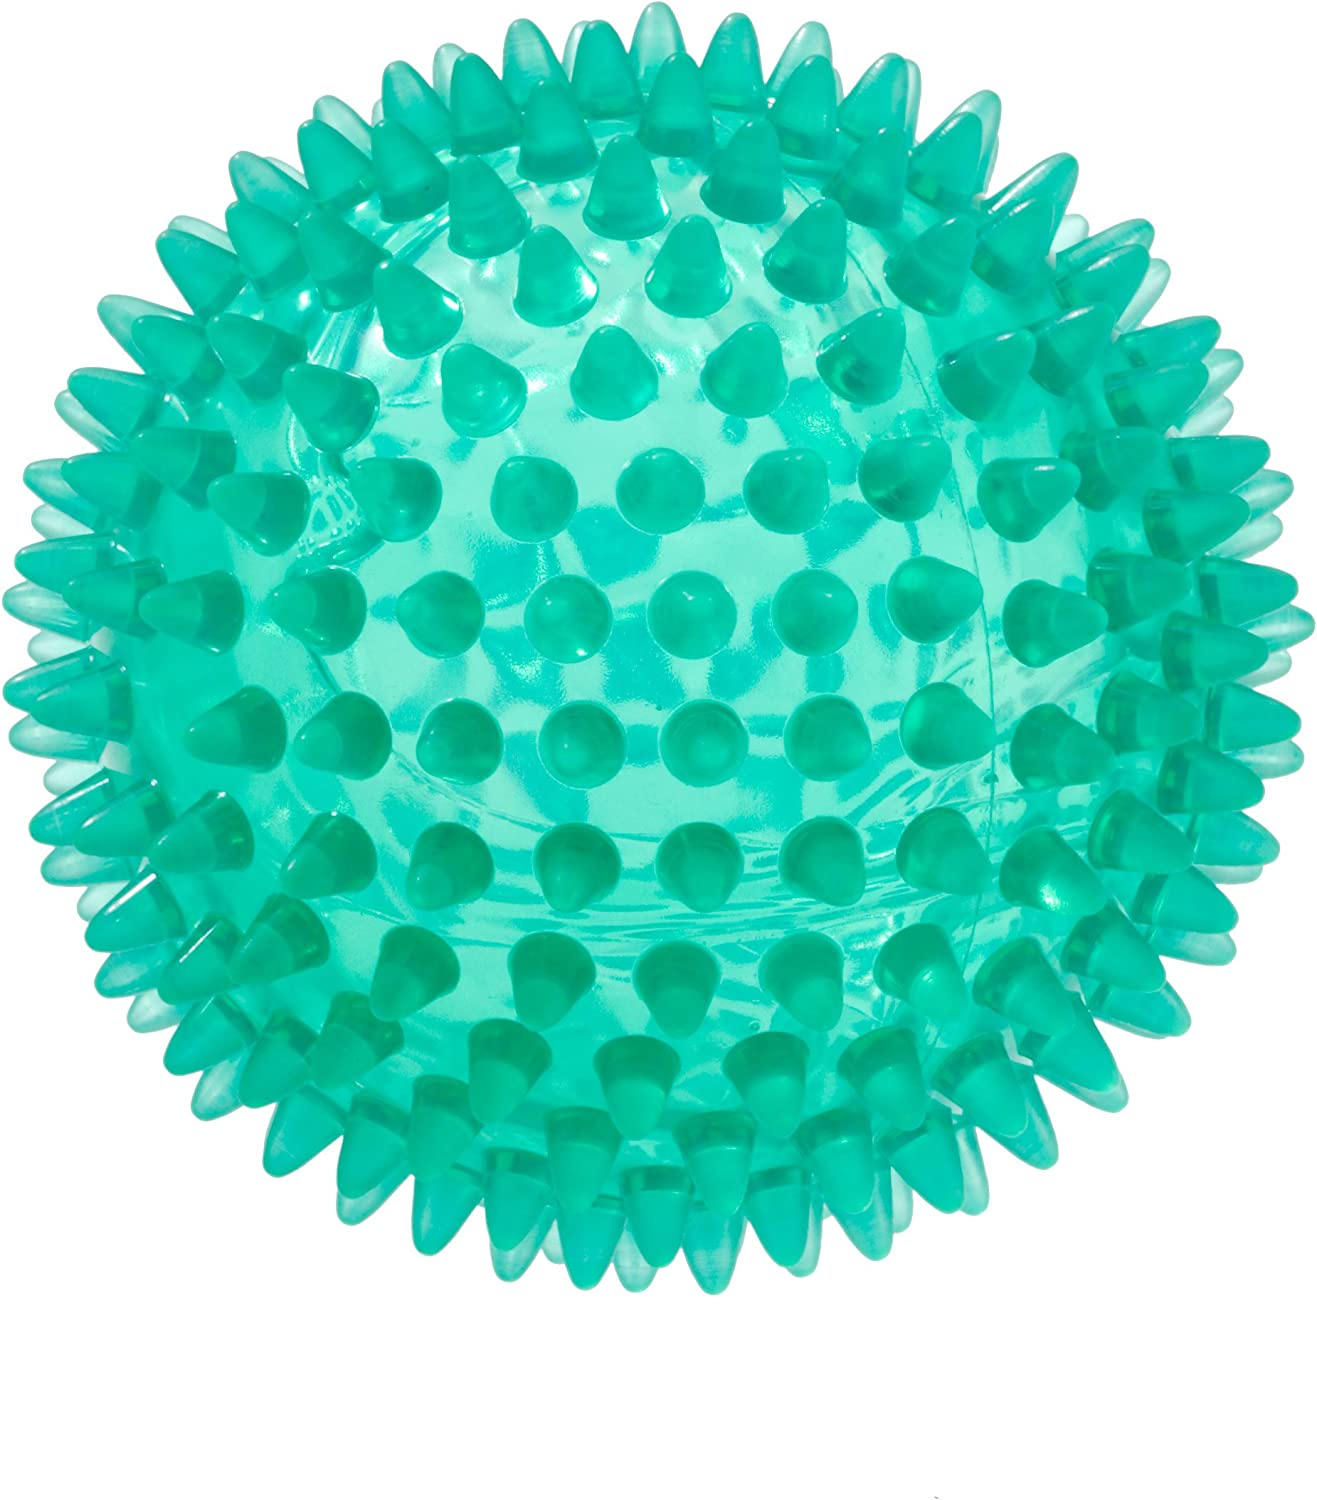 GYMNIC Reflex Recommendation Ball 10 Ranking TOP9 Green